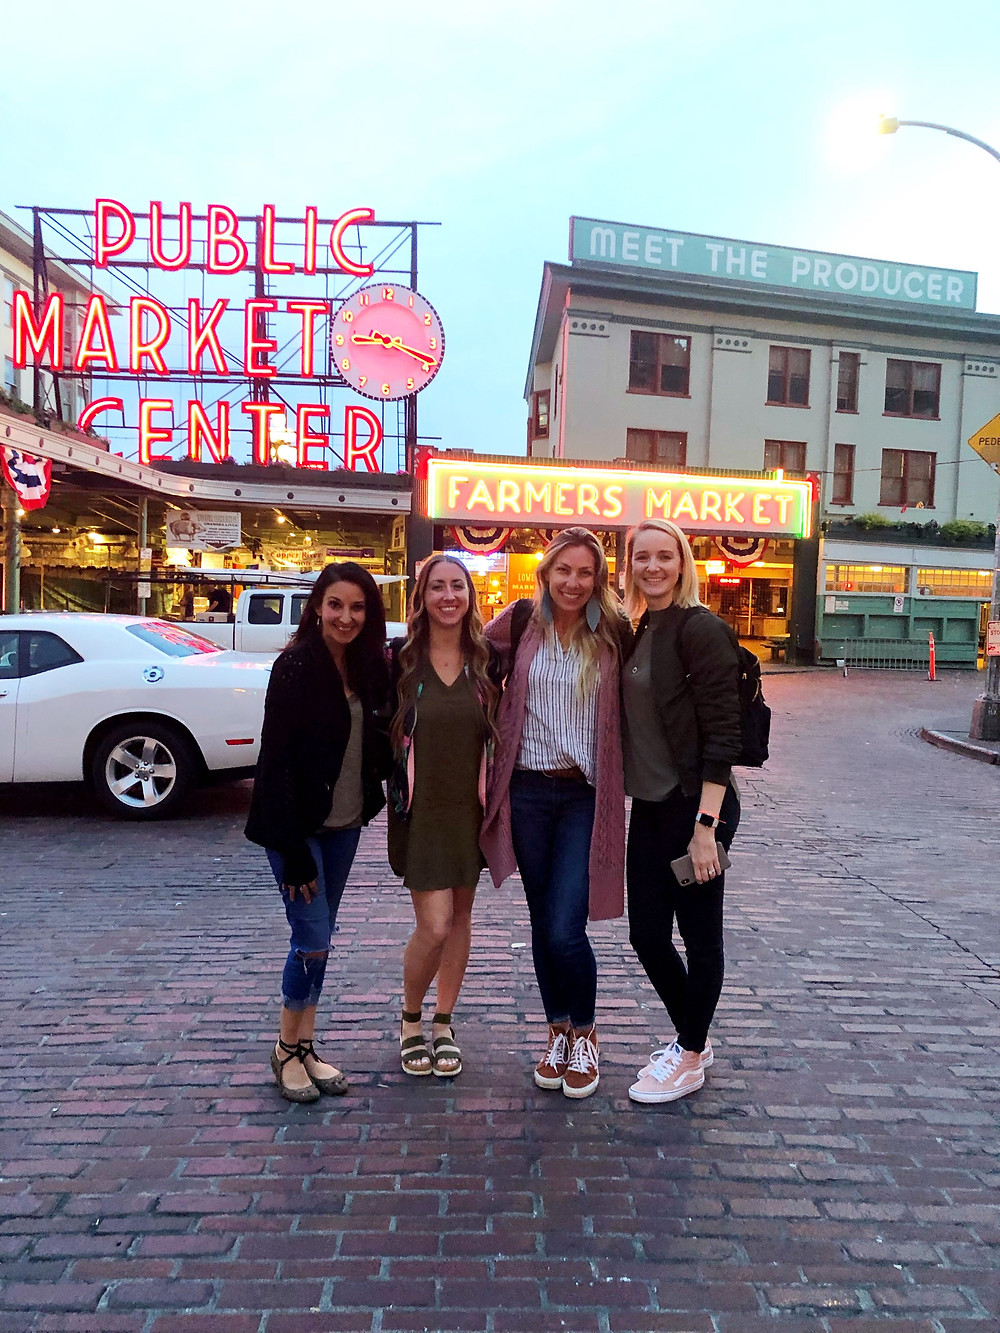 Carrin, Laura, Shannon and I at Pike Place